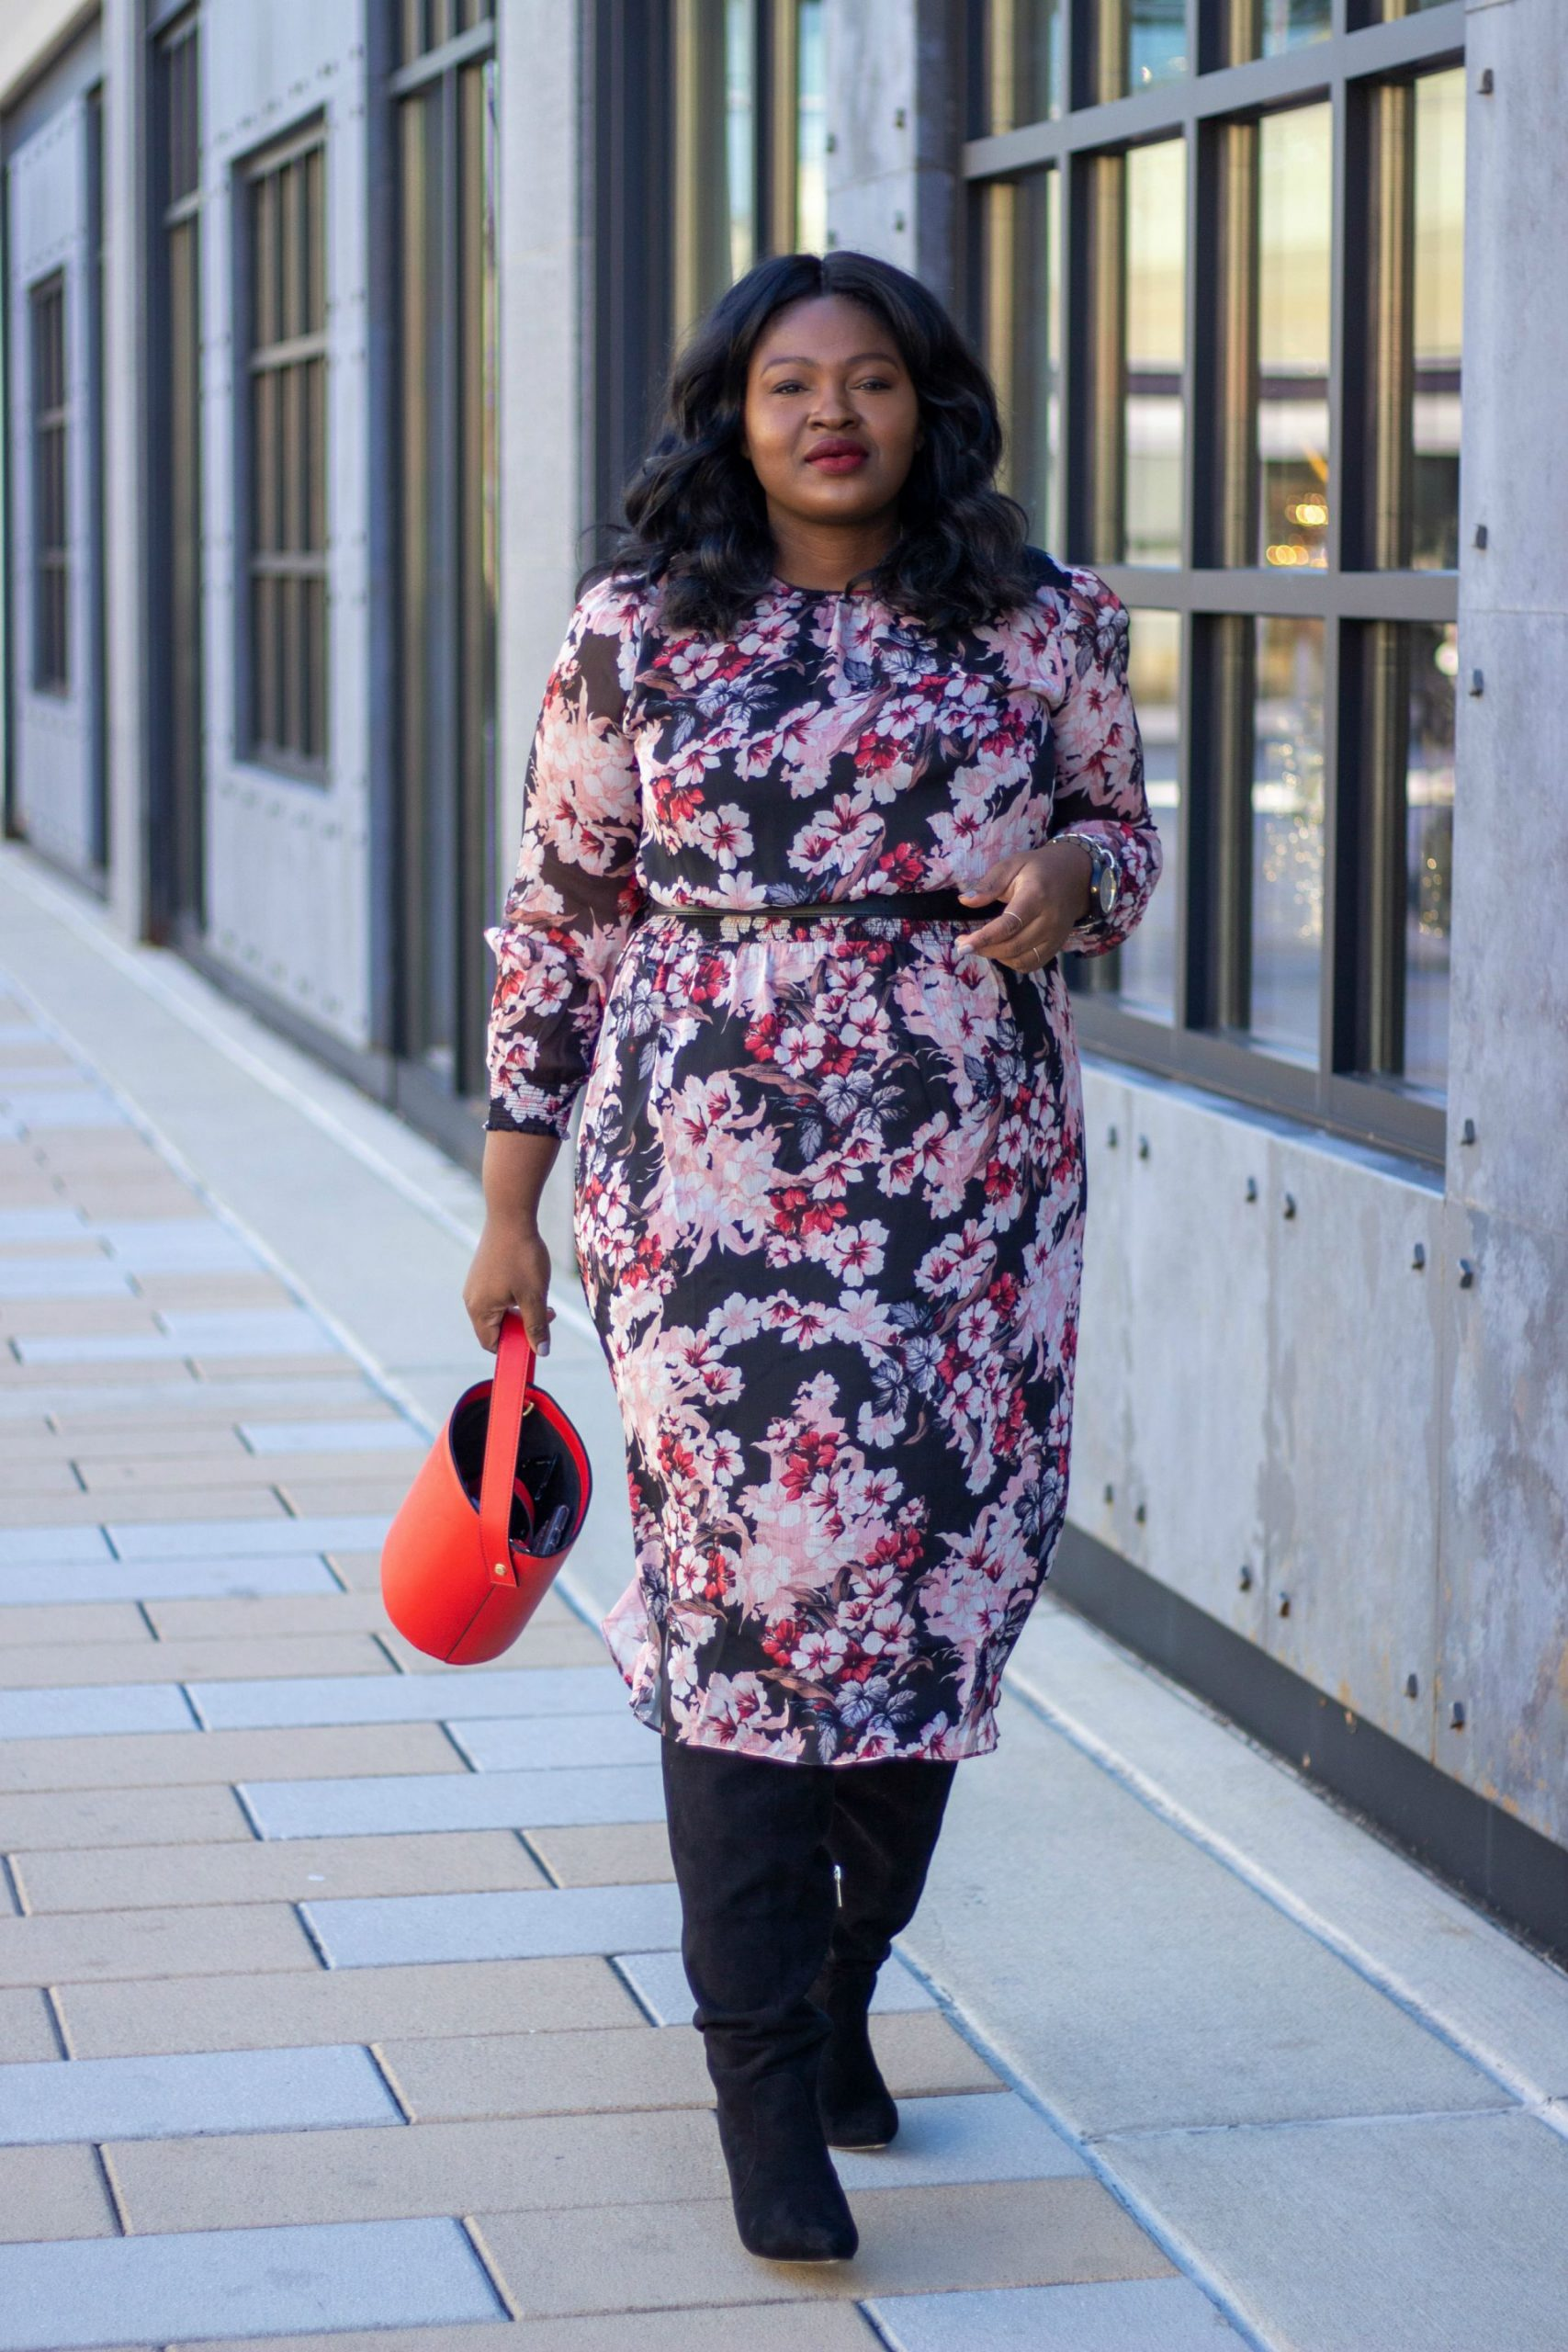 weekend to work with QVC from supplechic a fashion and lifestyle blog based in Baltimore